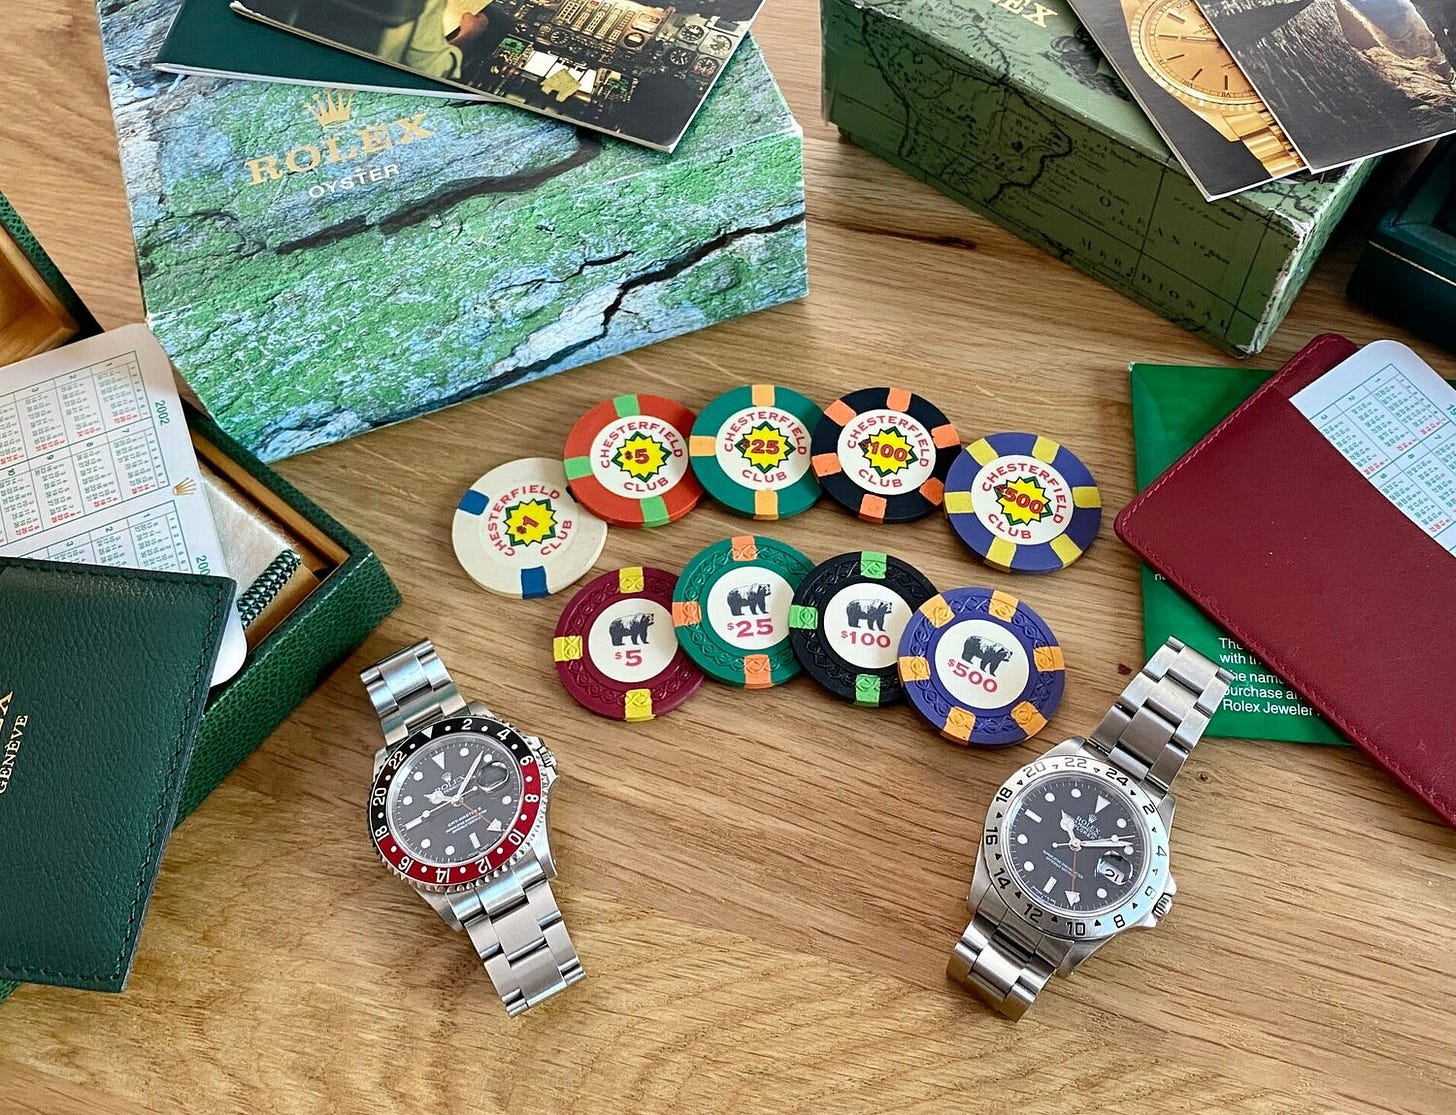 """Jesse's GMT-Master II """"Coke"""" ref. 16710, with his Rolex 16570 and poker chips used in the movie  Rounders  